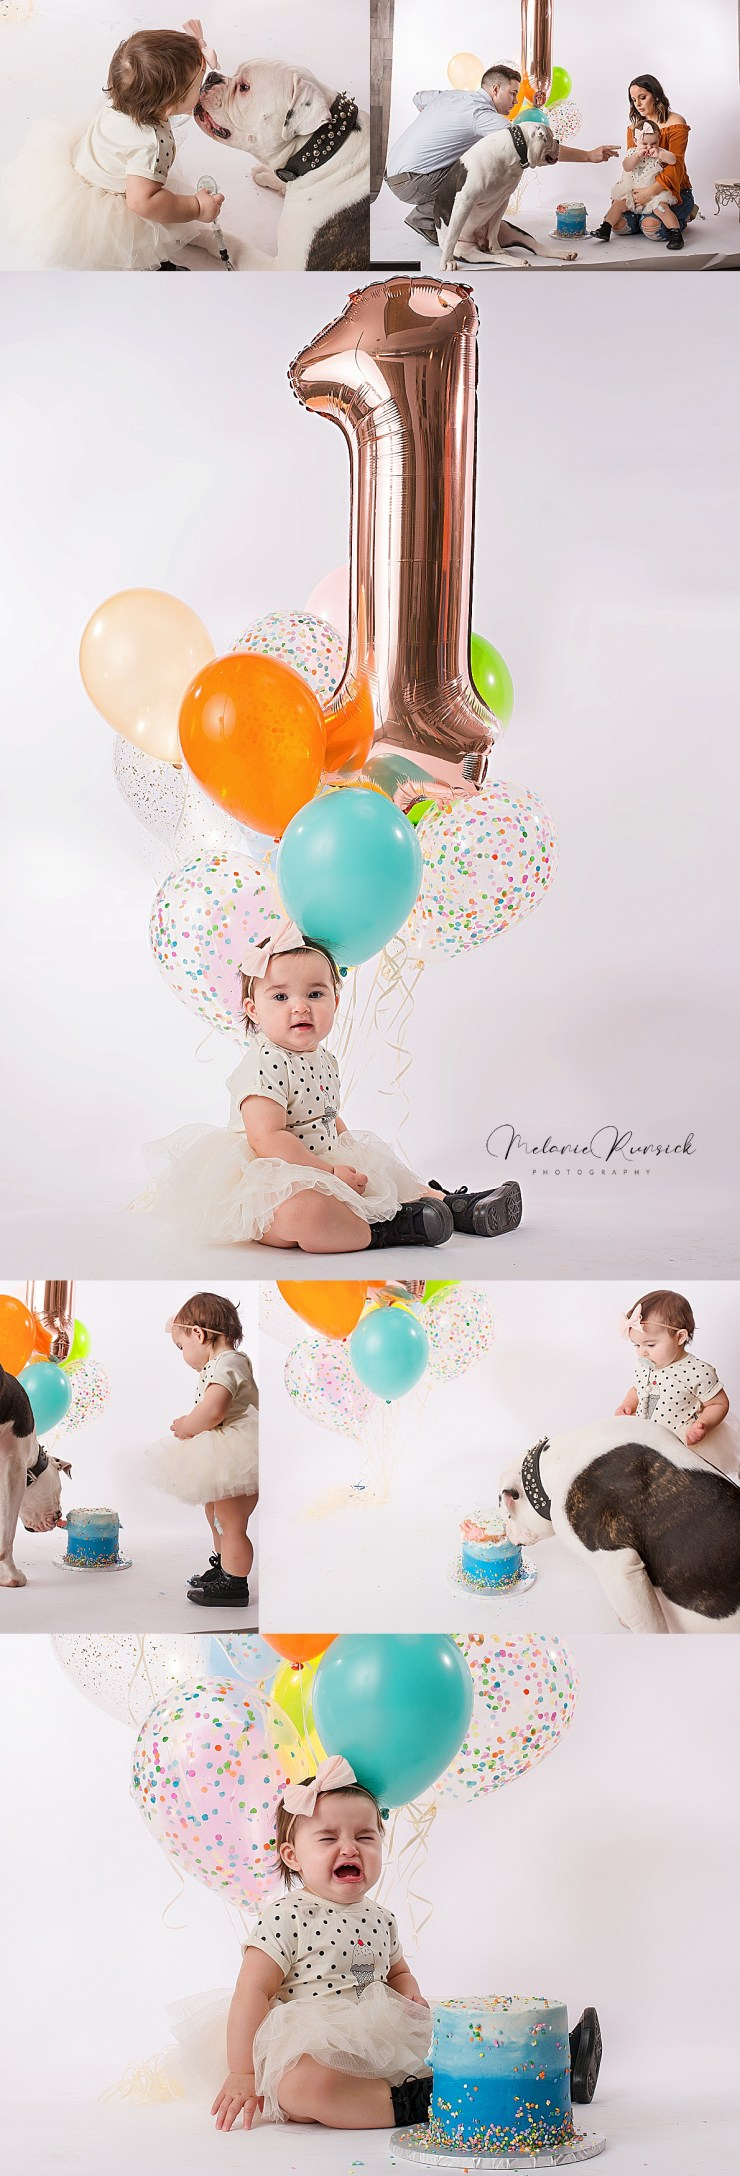 Jonesboro Ar Cake Smash Photographer Melanie Runsick Photography Northeast Arkansas Family Photographer